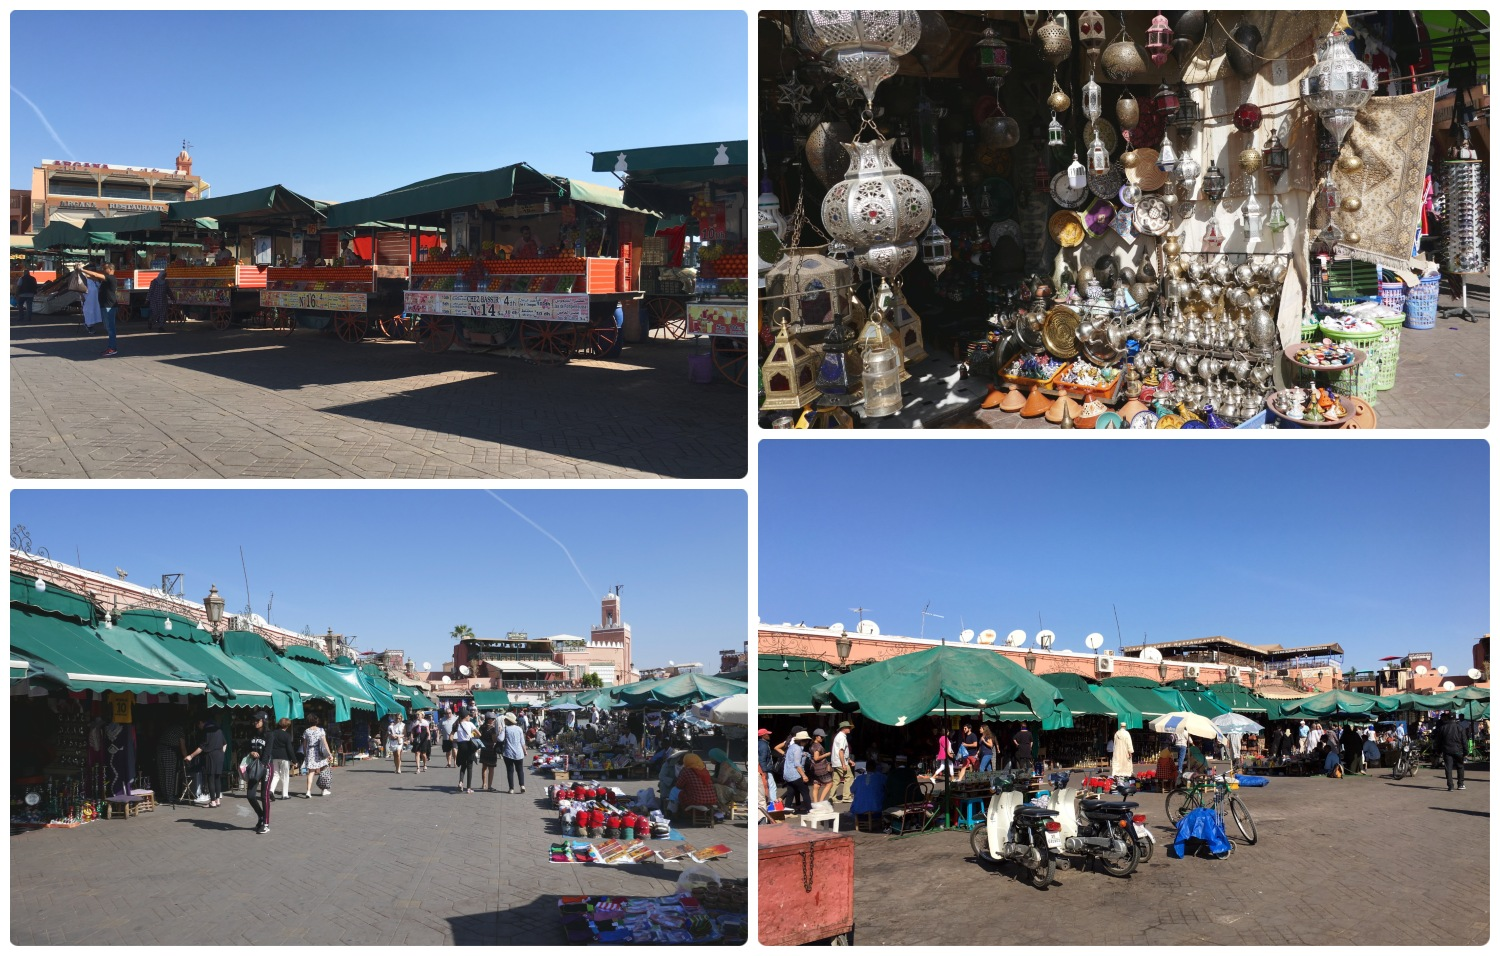 Jemaa el Fna Square in the Medina (Old Town), Marrakech, Morocco. It's the original center of the souks (Arabic market), although they've grown so much over the years that they've spread out well beyond Jemaa el Fna.